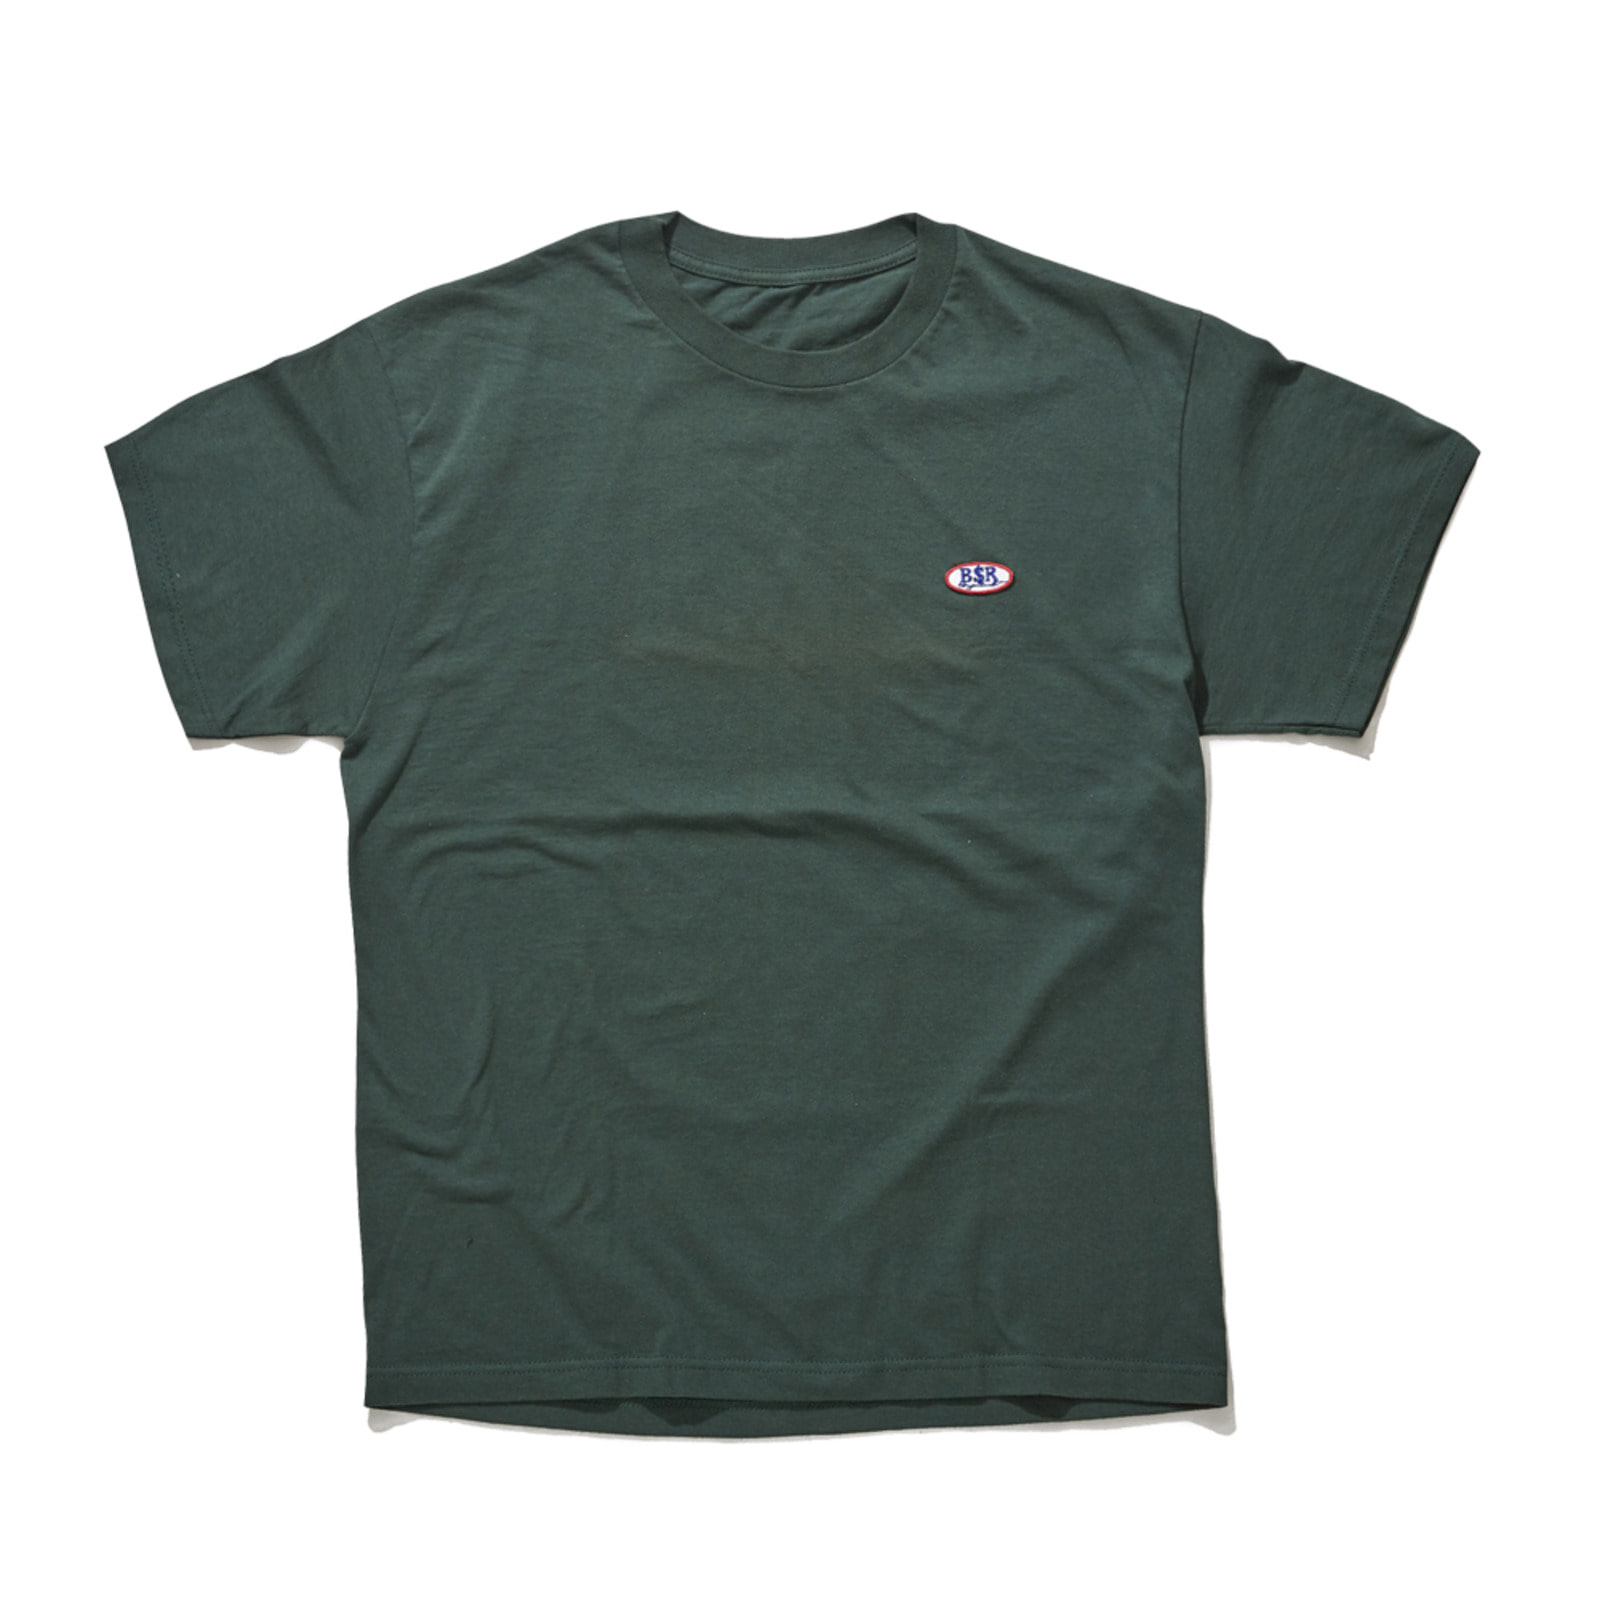 BSRABBIT BSR WAPPEN T-SHIRT GREEN